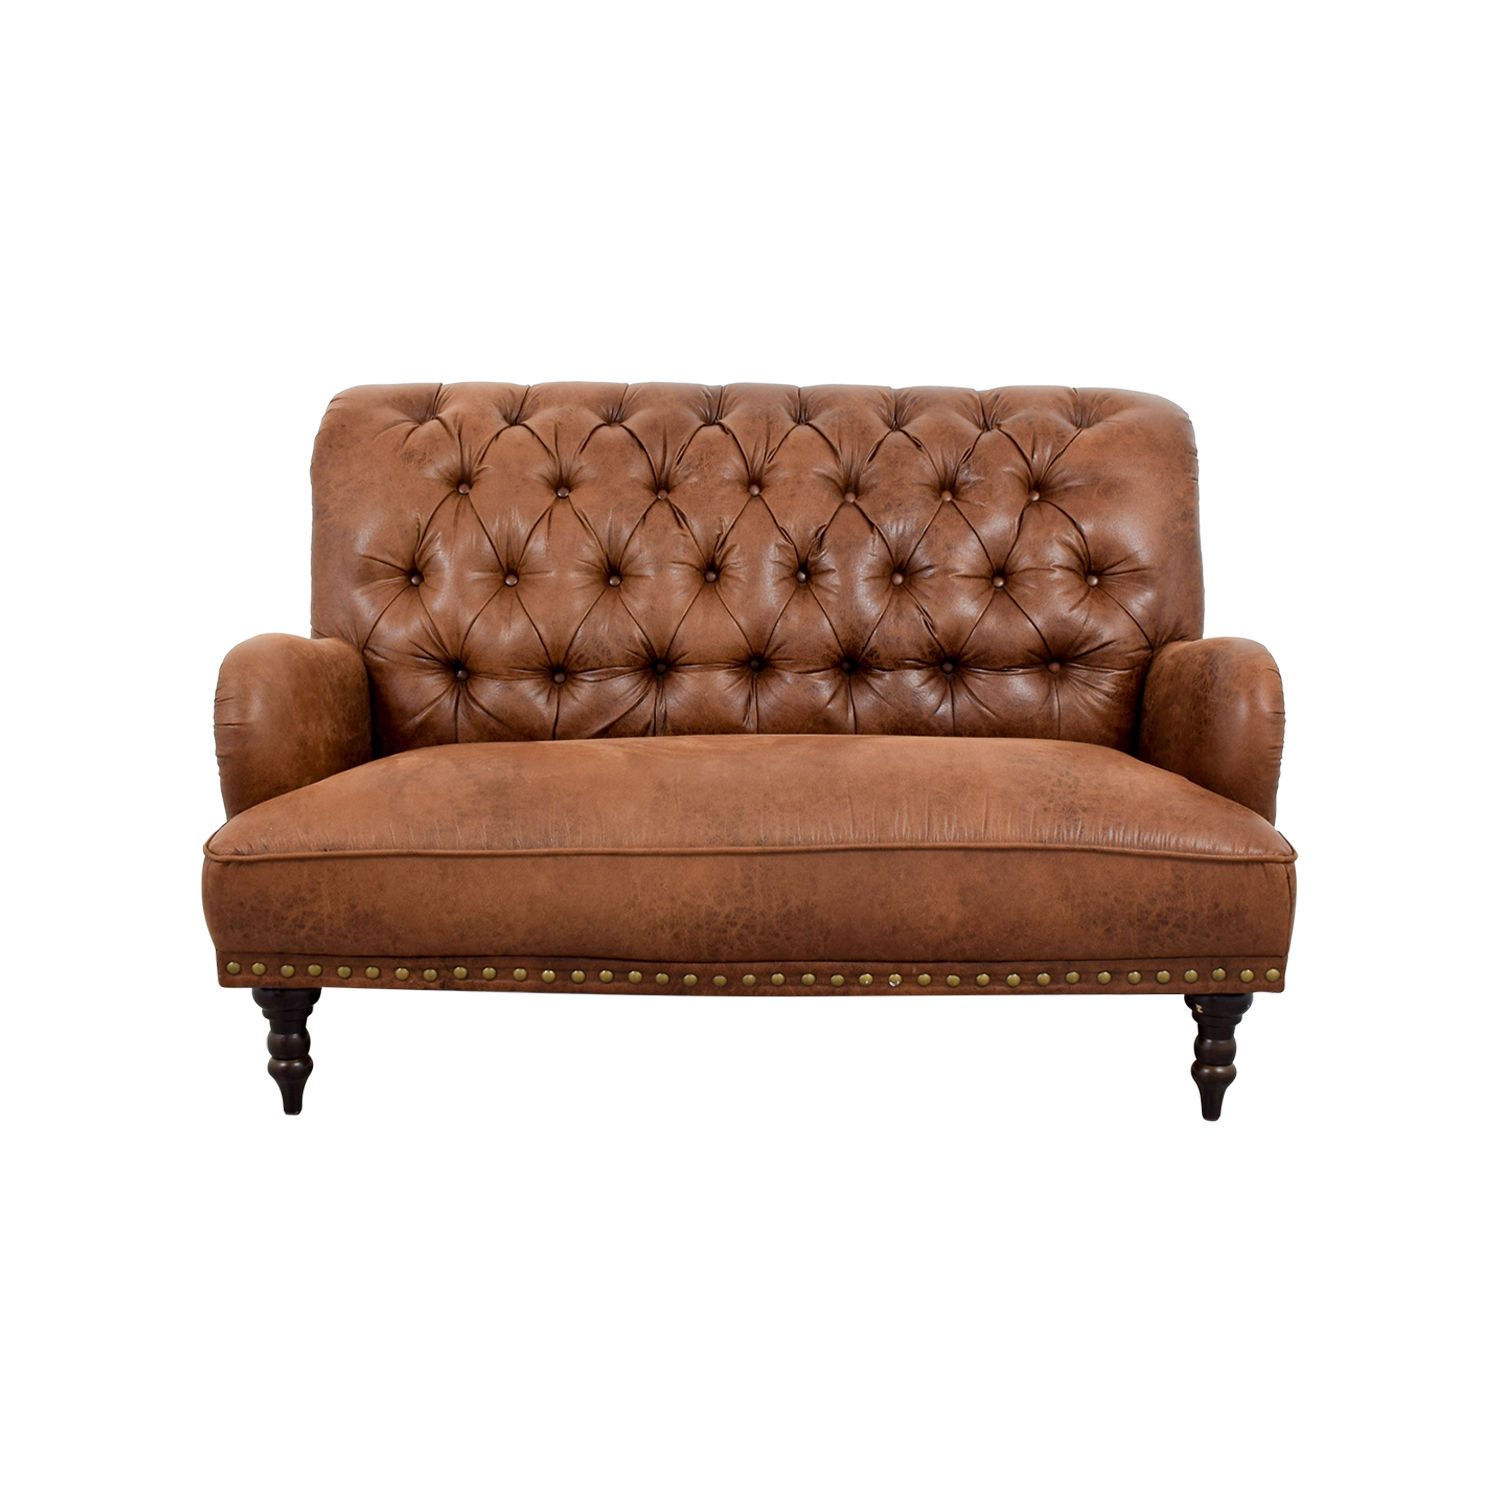 Tufted Brown Leather Sofa Fancy Tufted Brown Leather Sofa Christopher Rustic Lodge Thesofa